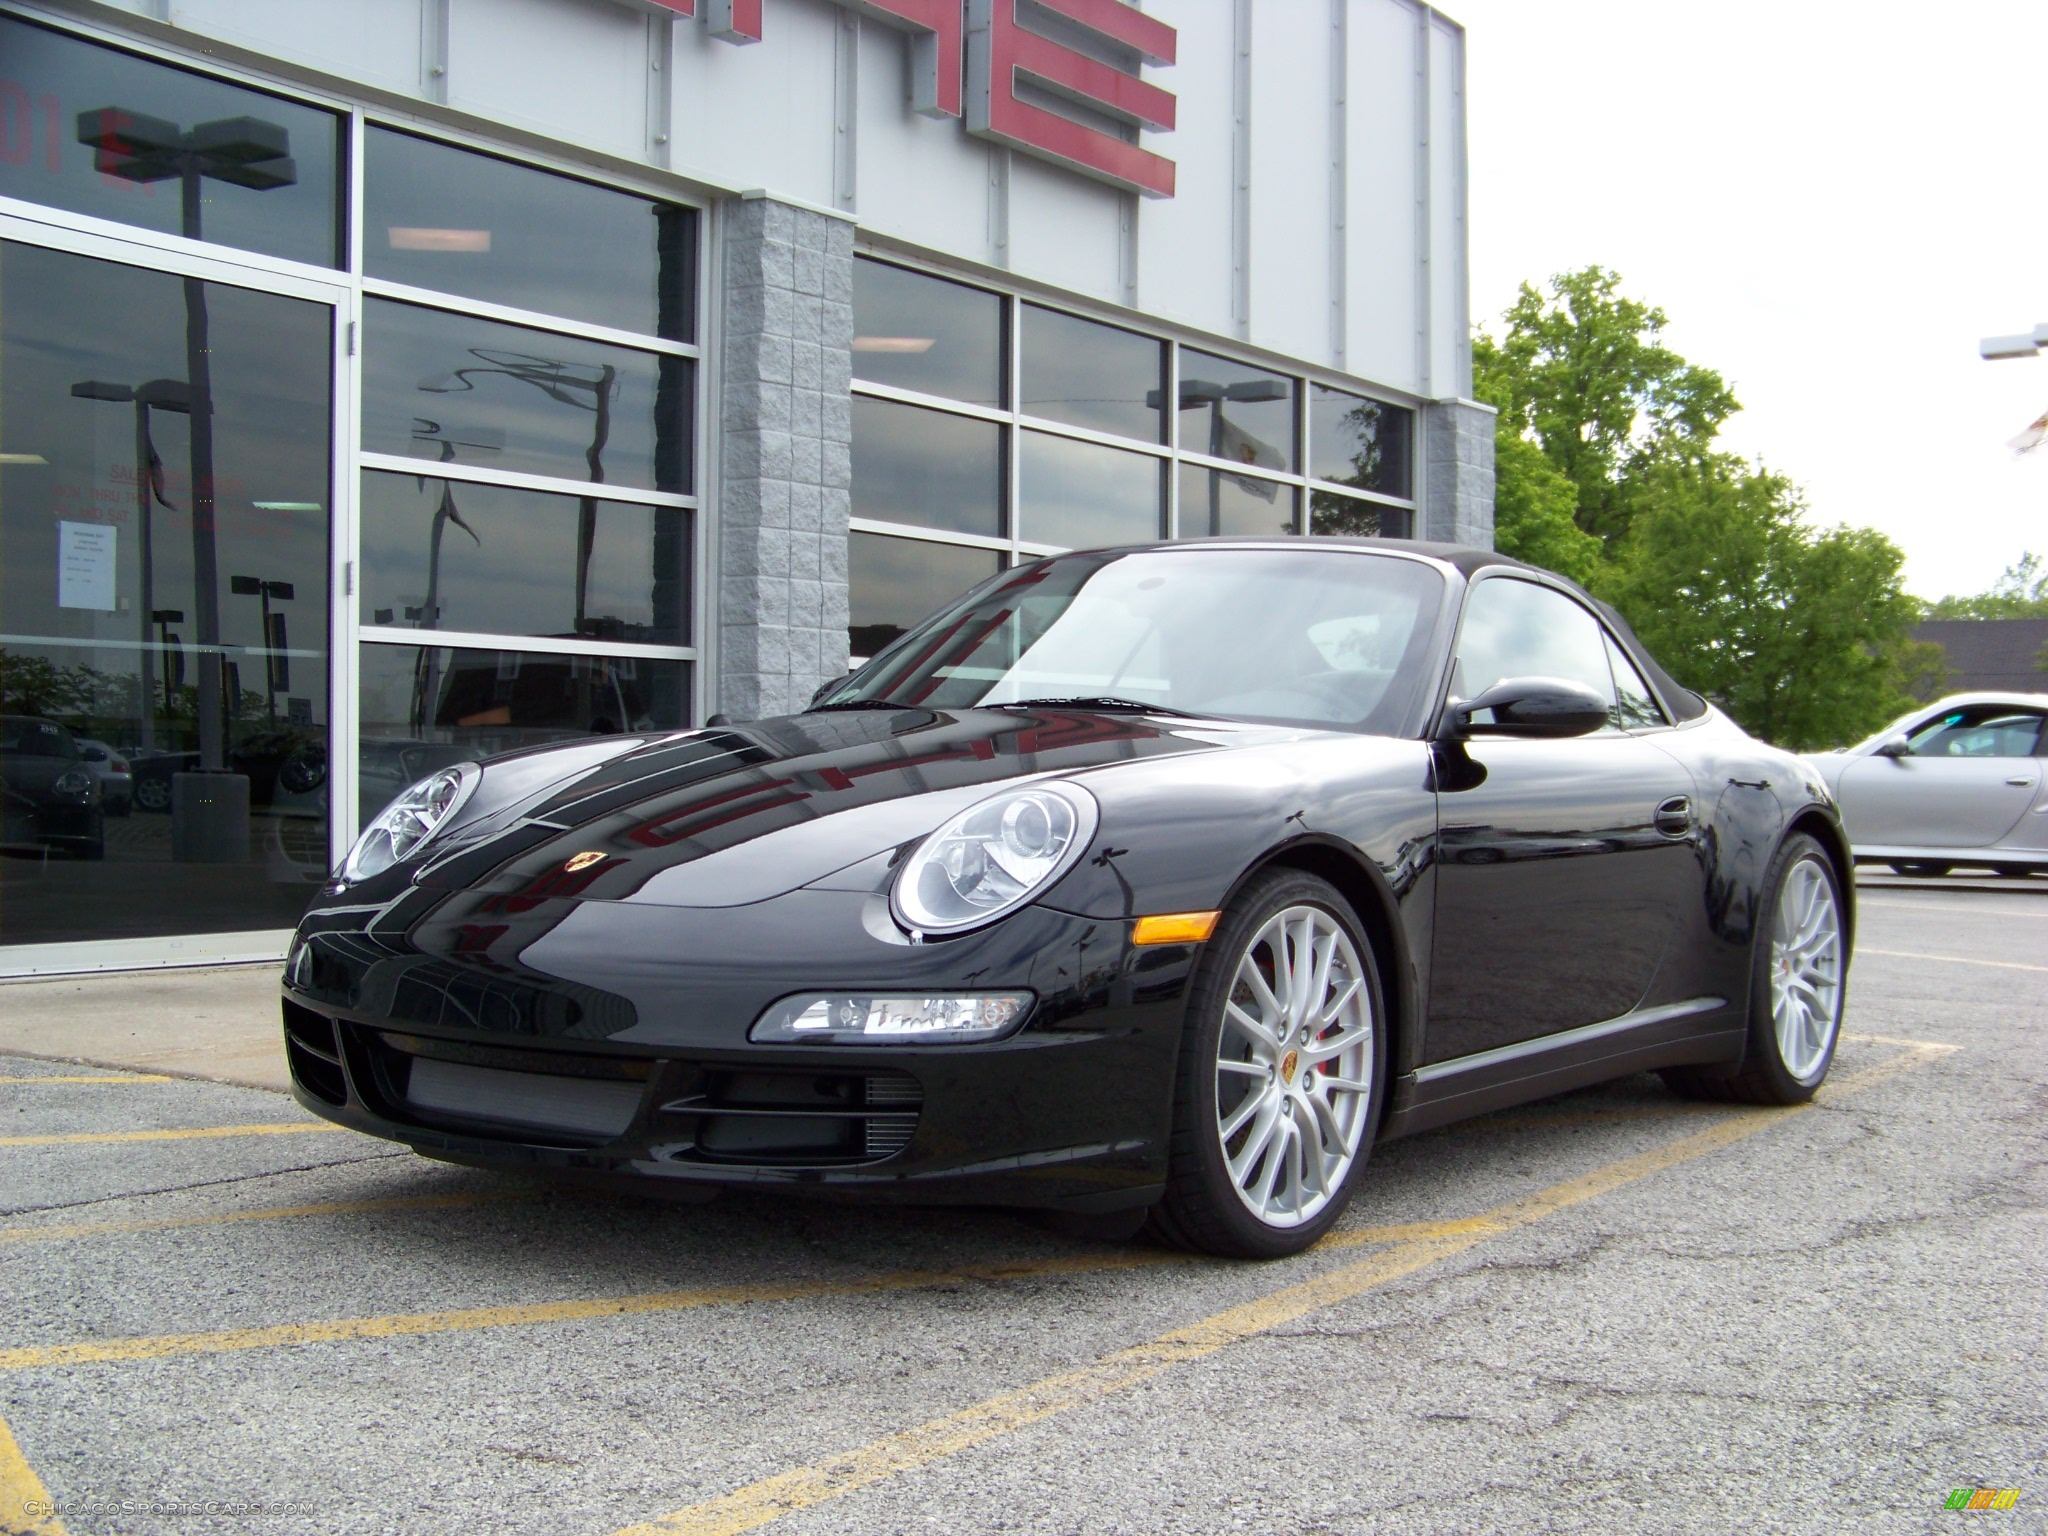 2008 porsche 911 carrera 4s cabriolet in black 776969. Black Bedroom Furniture Sets. Home Design Ideas